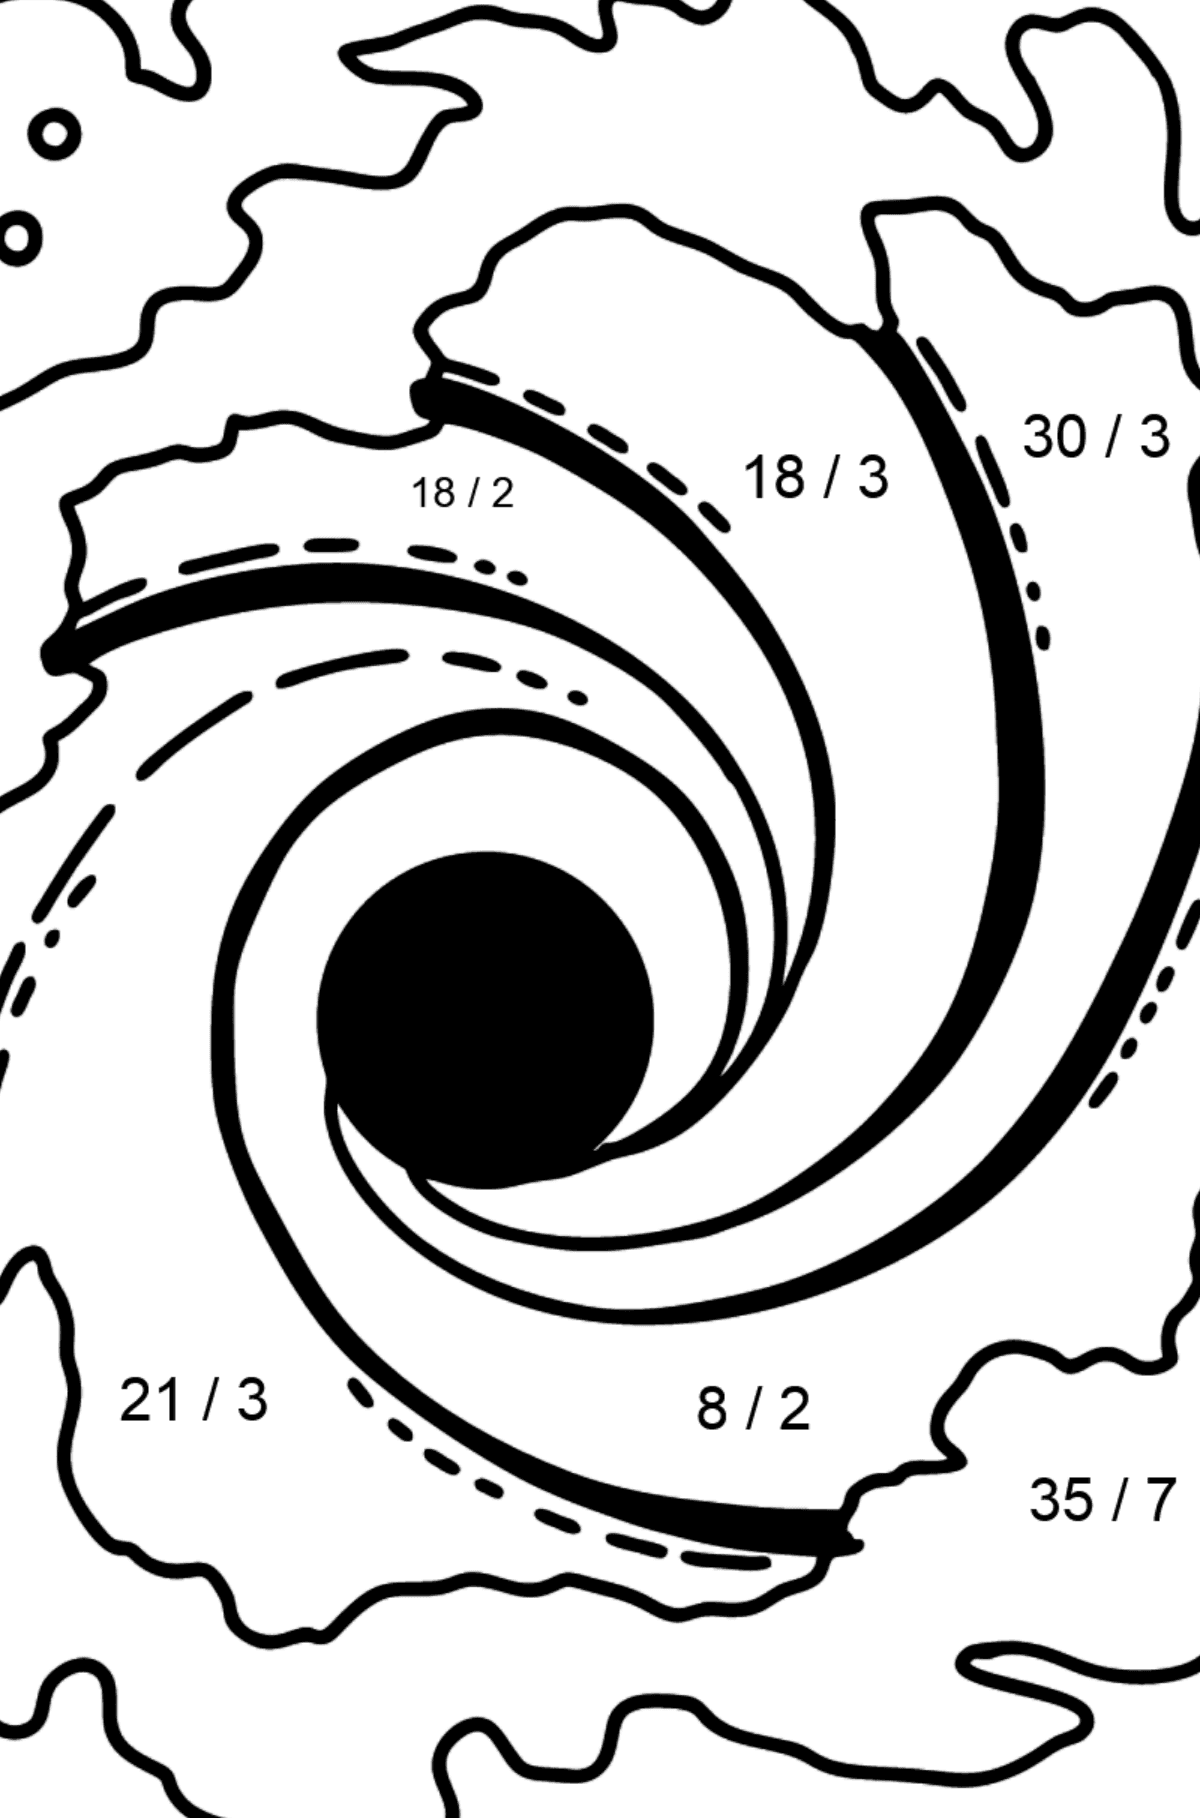 Black Hole coloring page - Math Coloring - Division for Kids